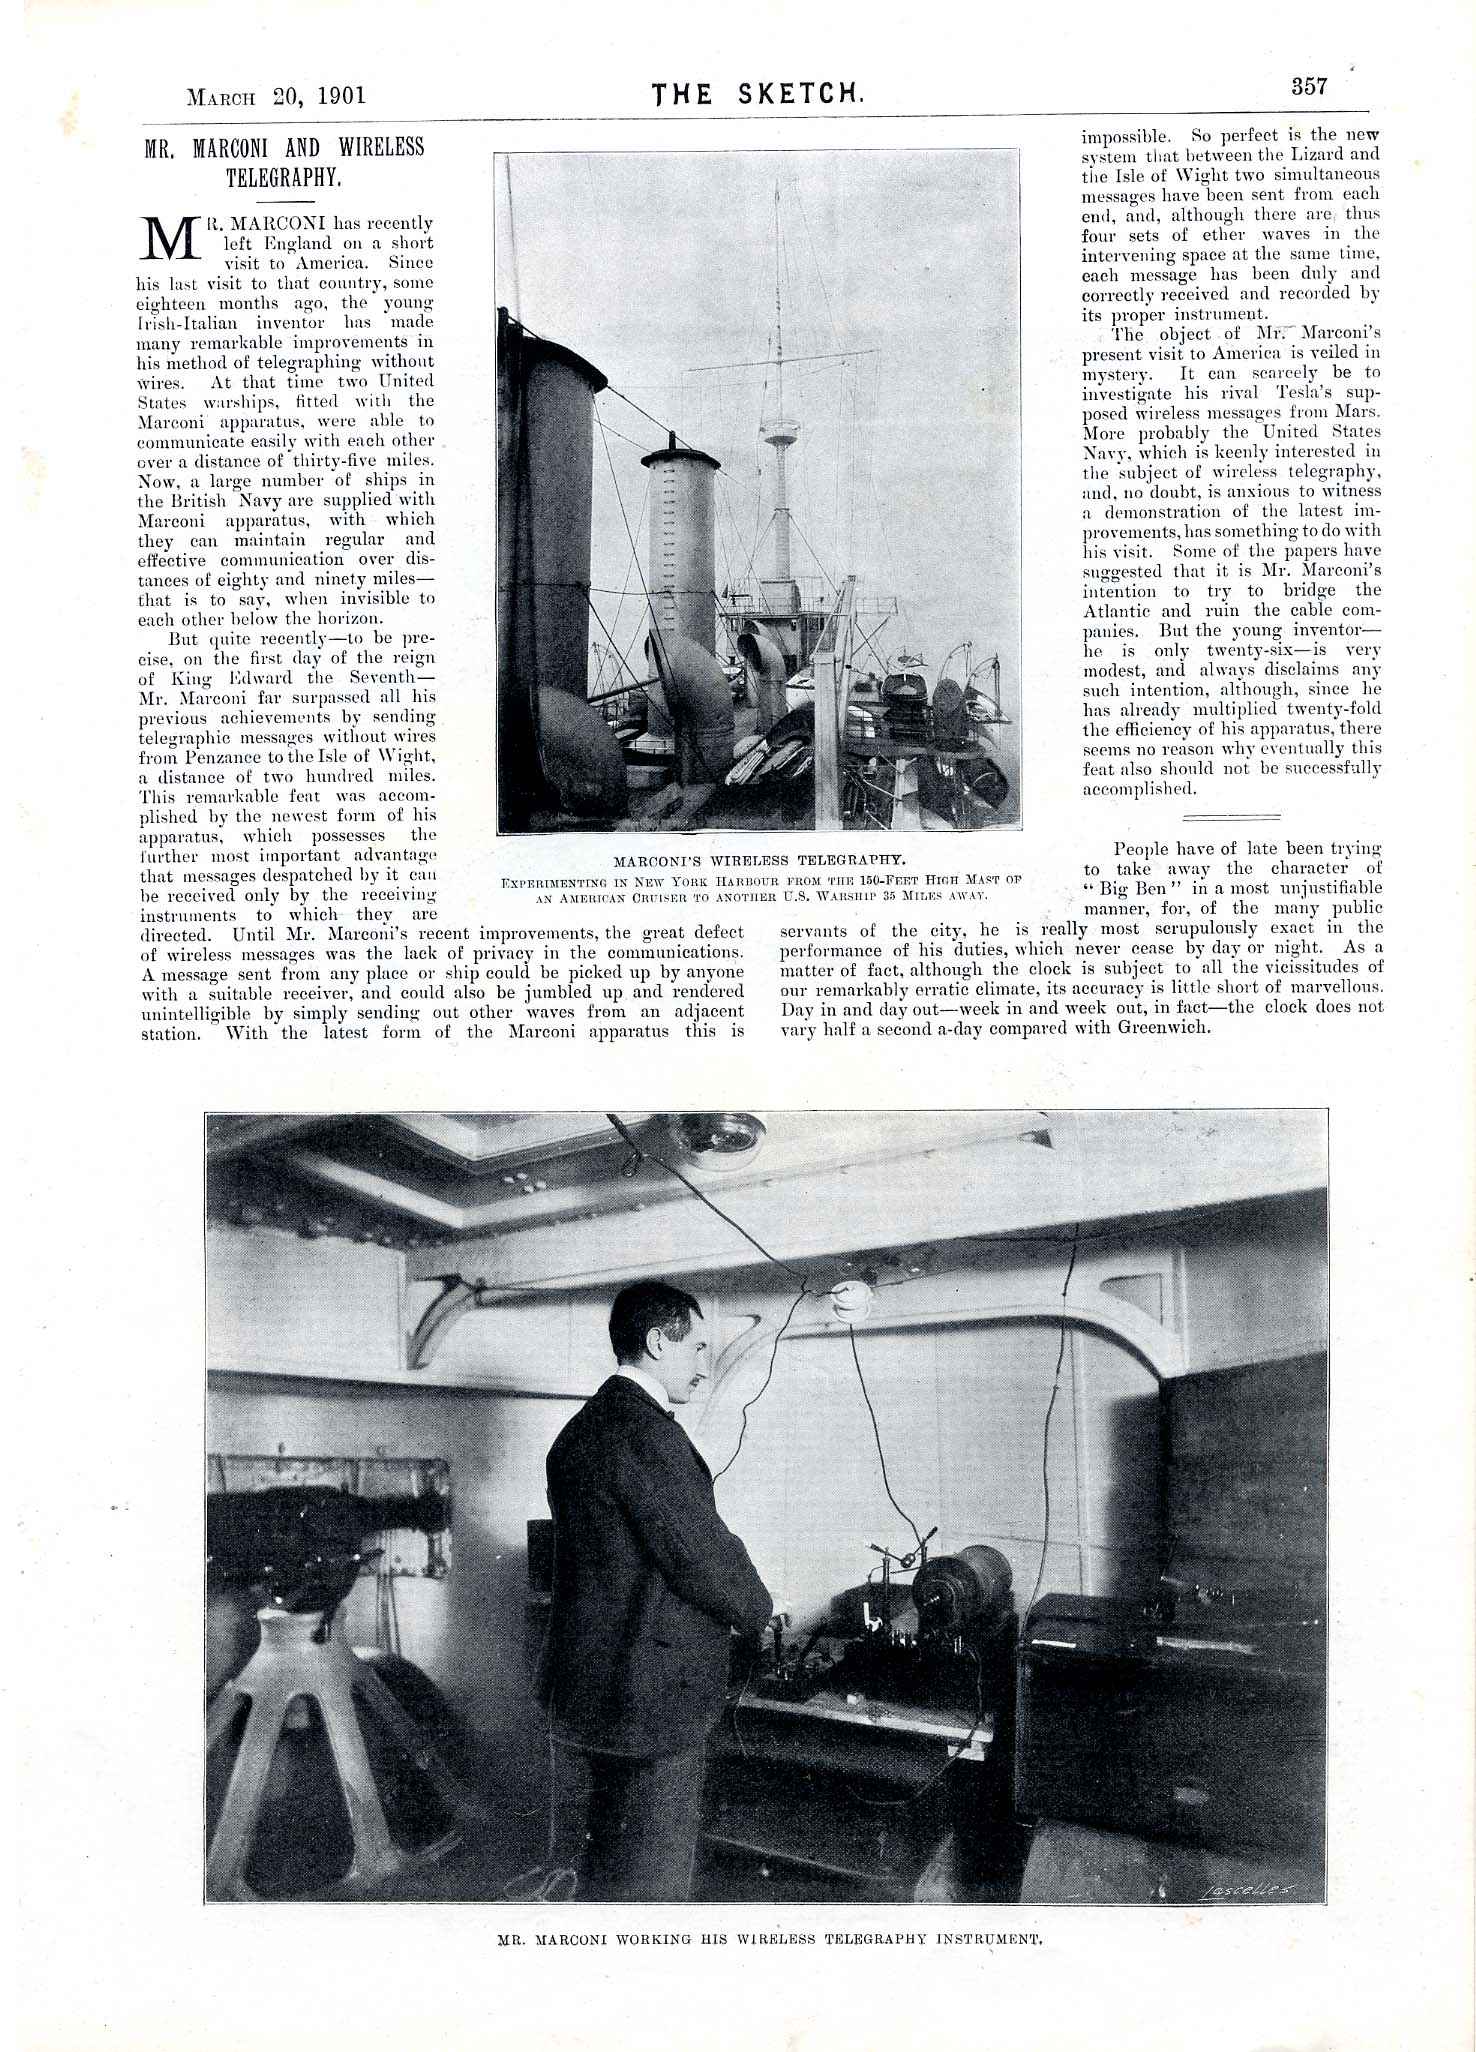 Illustrated Article from The Sketch, March 1901